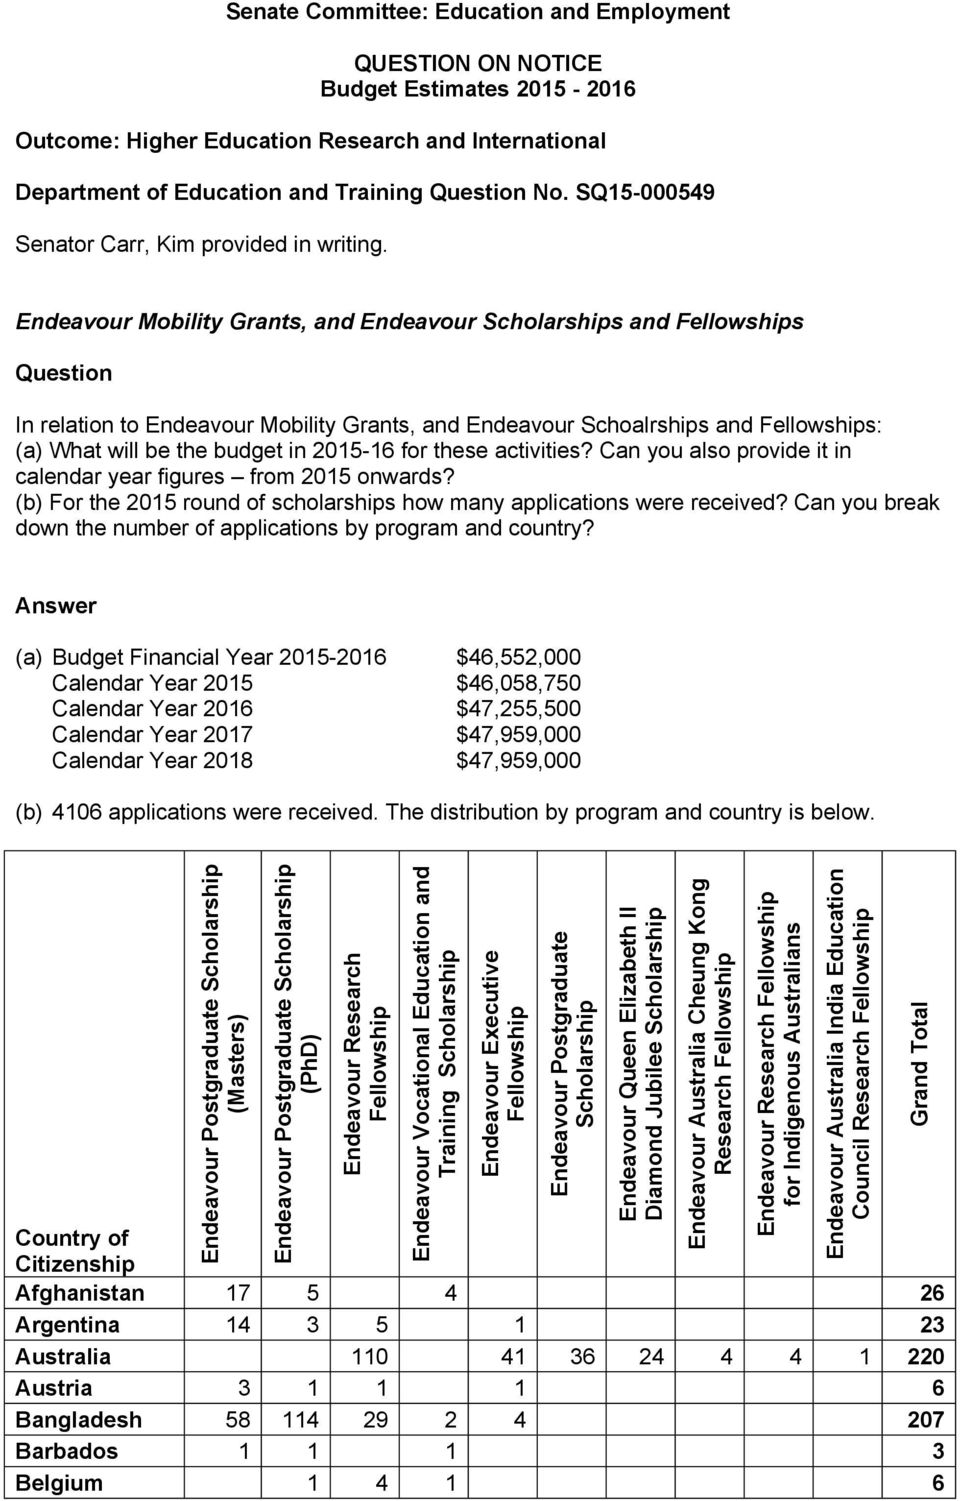 Endeavour Mobility Grants, and Endeavour s and s Question In relation to Endeavour Mobility Grants, and Endeavour Schoalrships and s: (a) What will be the budget in 2015-16 for these activities?